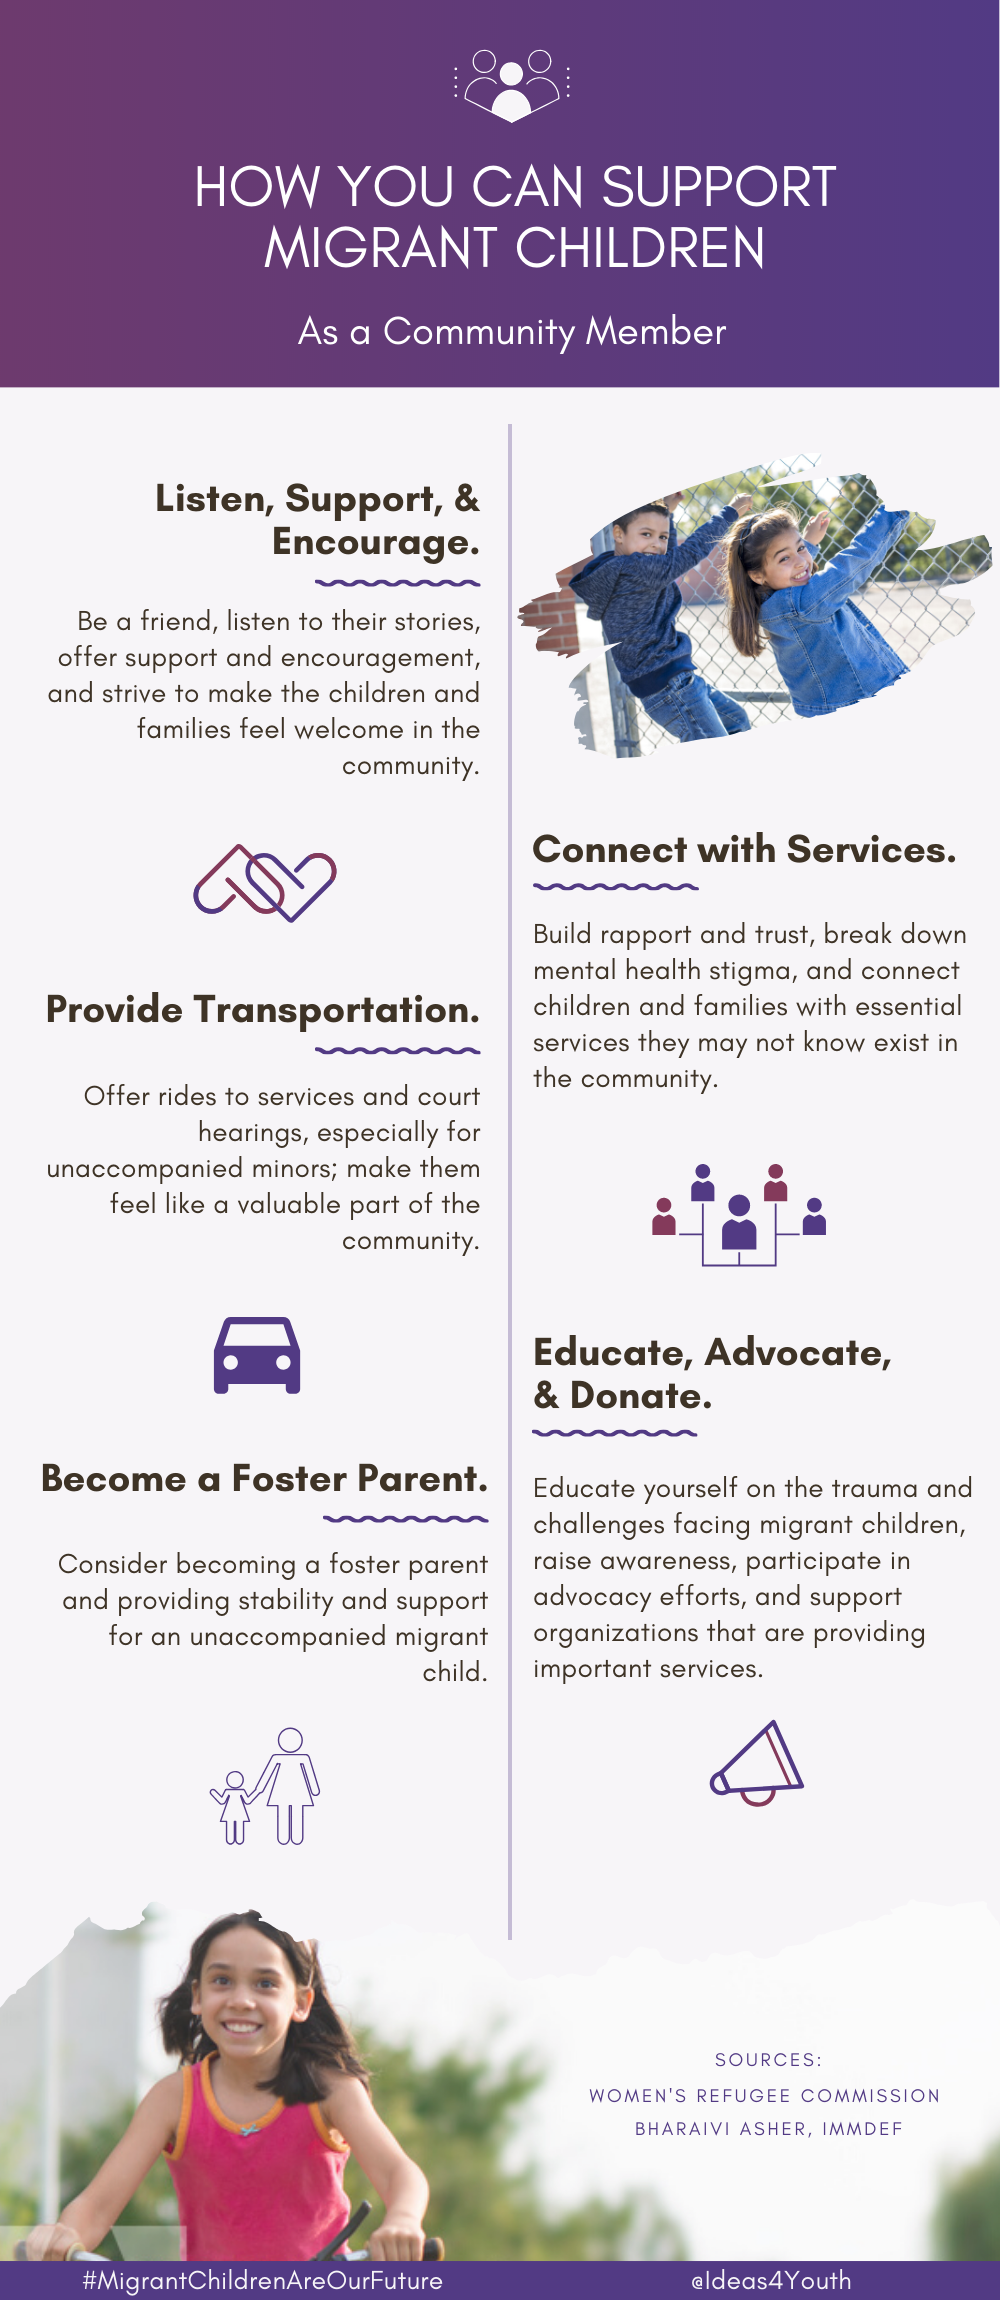 Infographic on how community members can support migrant children